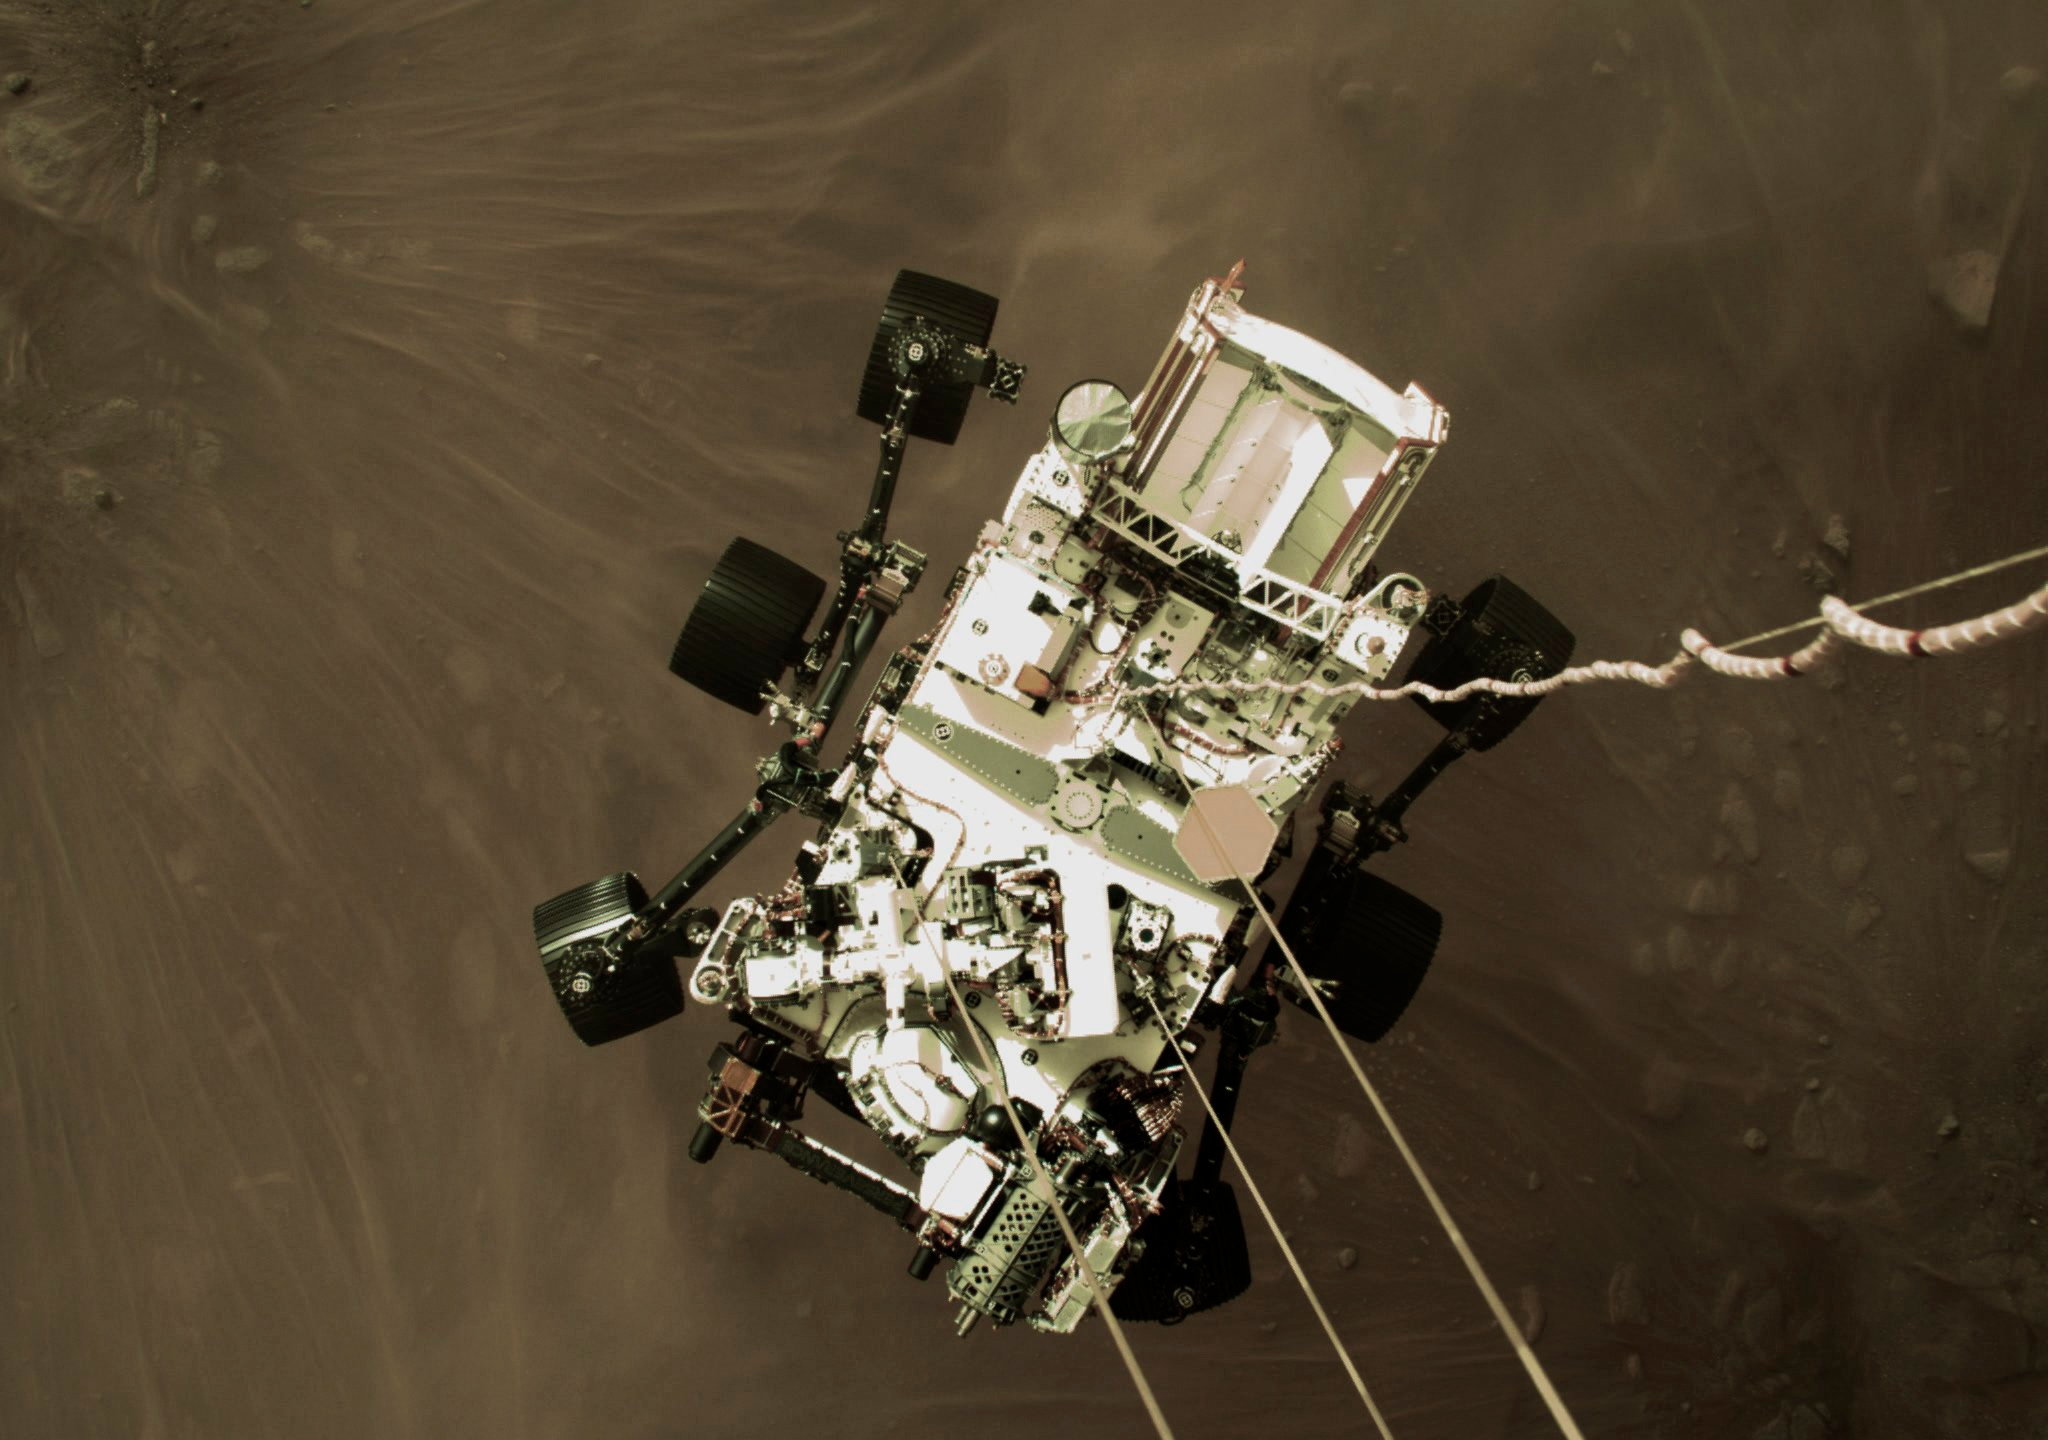 This Thursday, Feb. 18, 2021 photo provided by NASA shows the Perseverance rover lowered towards the surface of Mars during its powered descent. (NASA via AP)